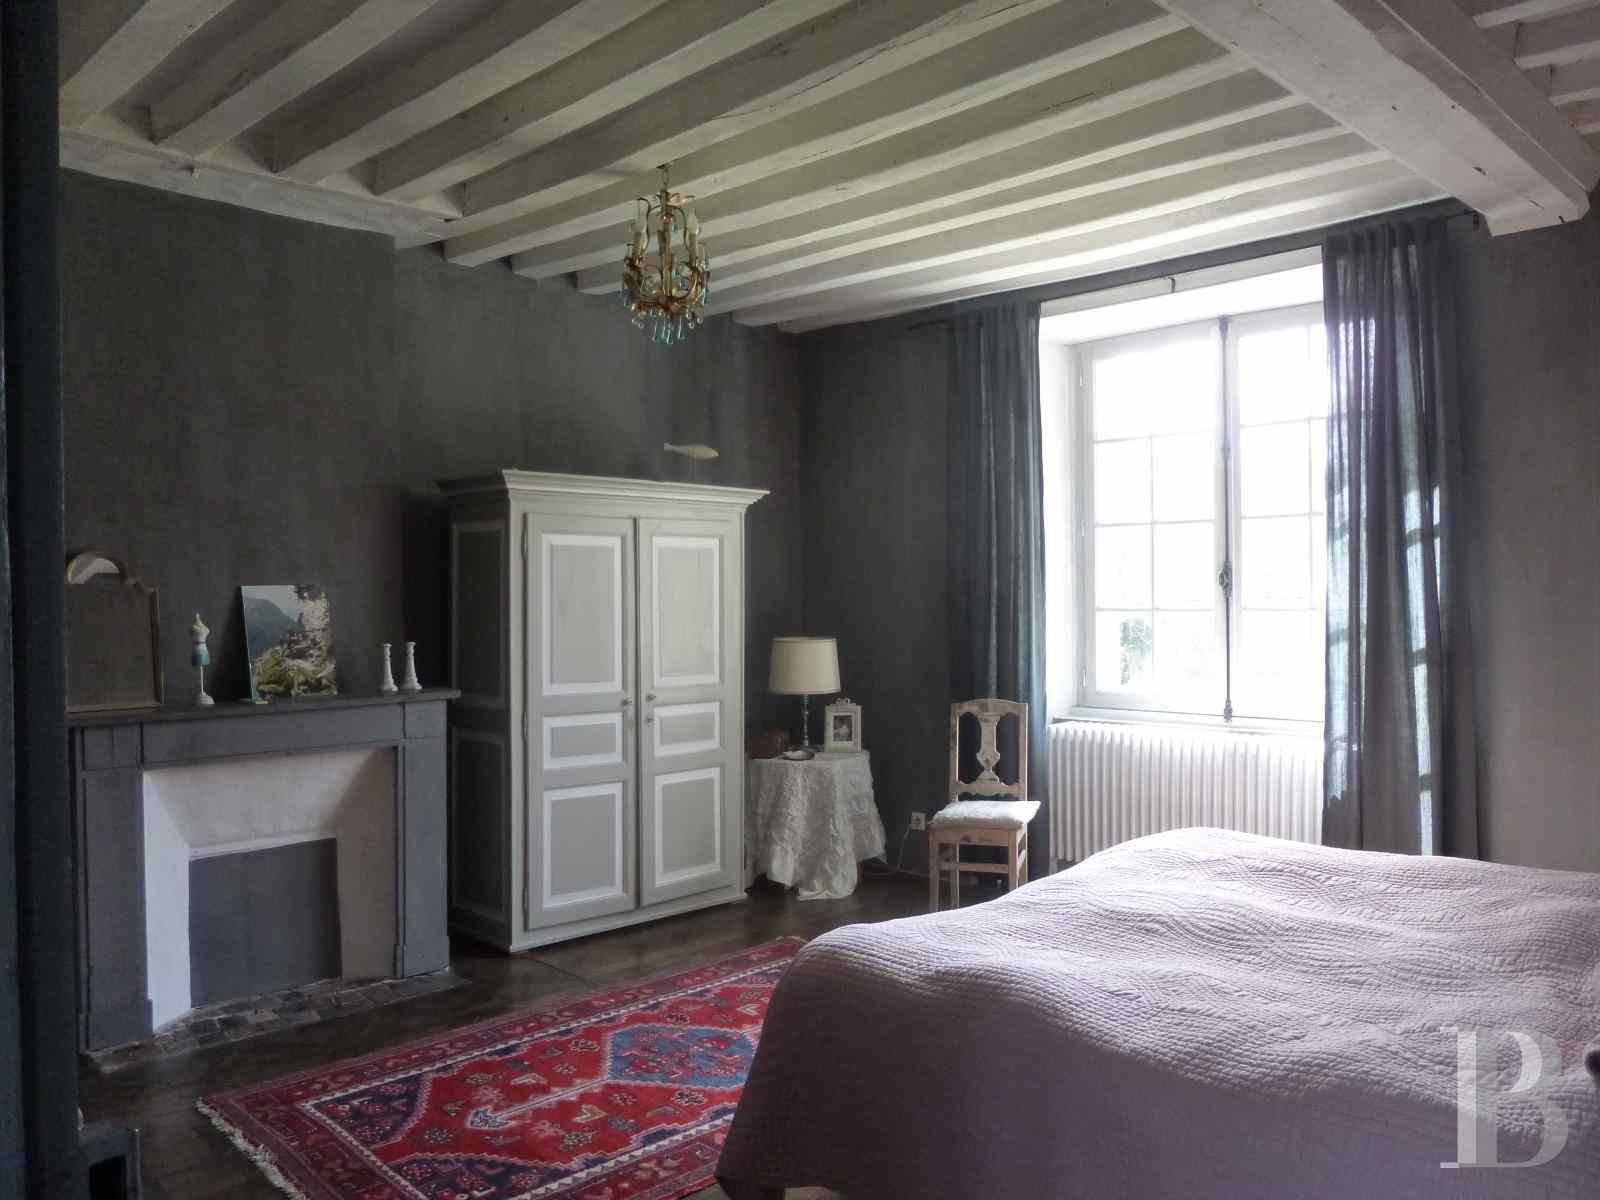 chateaux for sale France lower normandy bessin area - 12 zoom